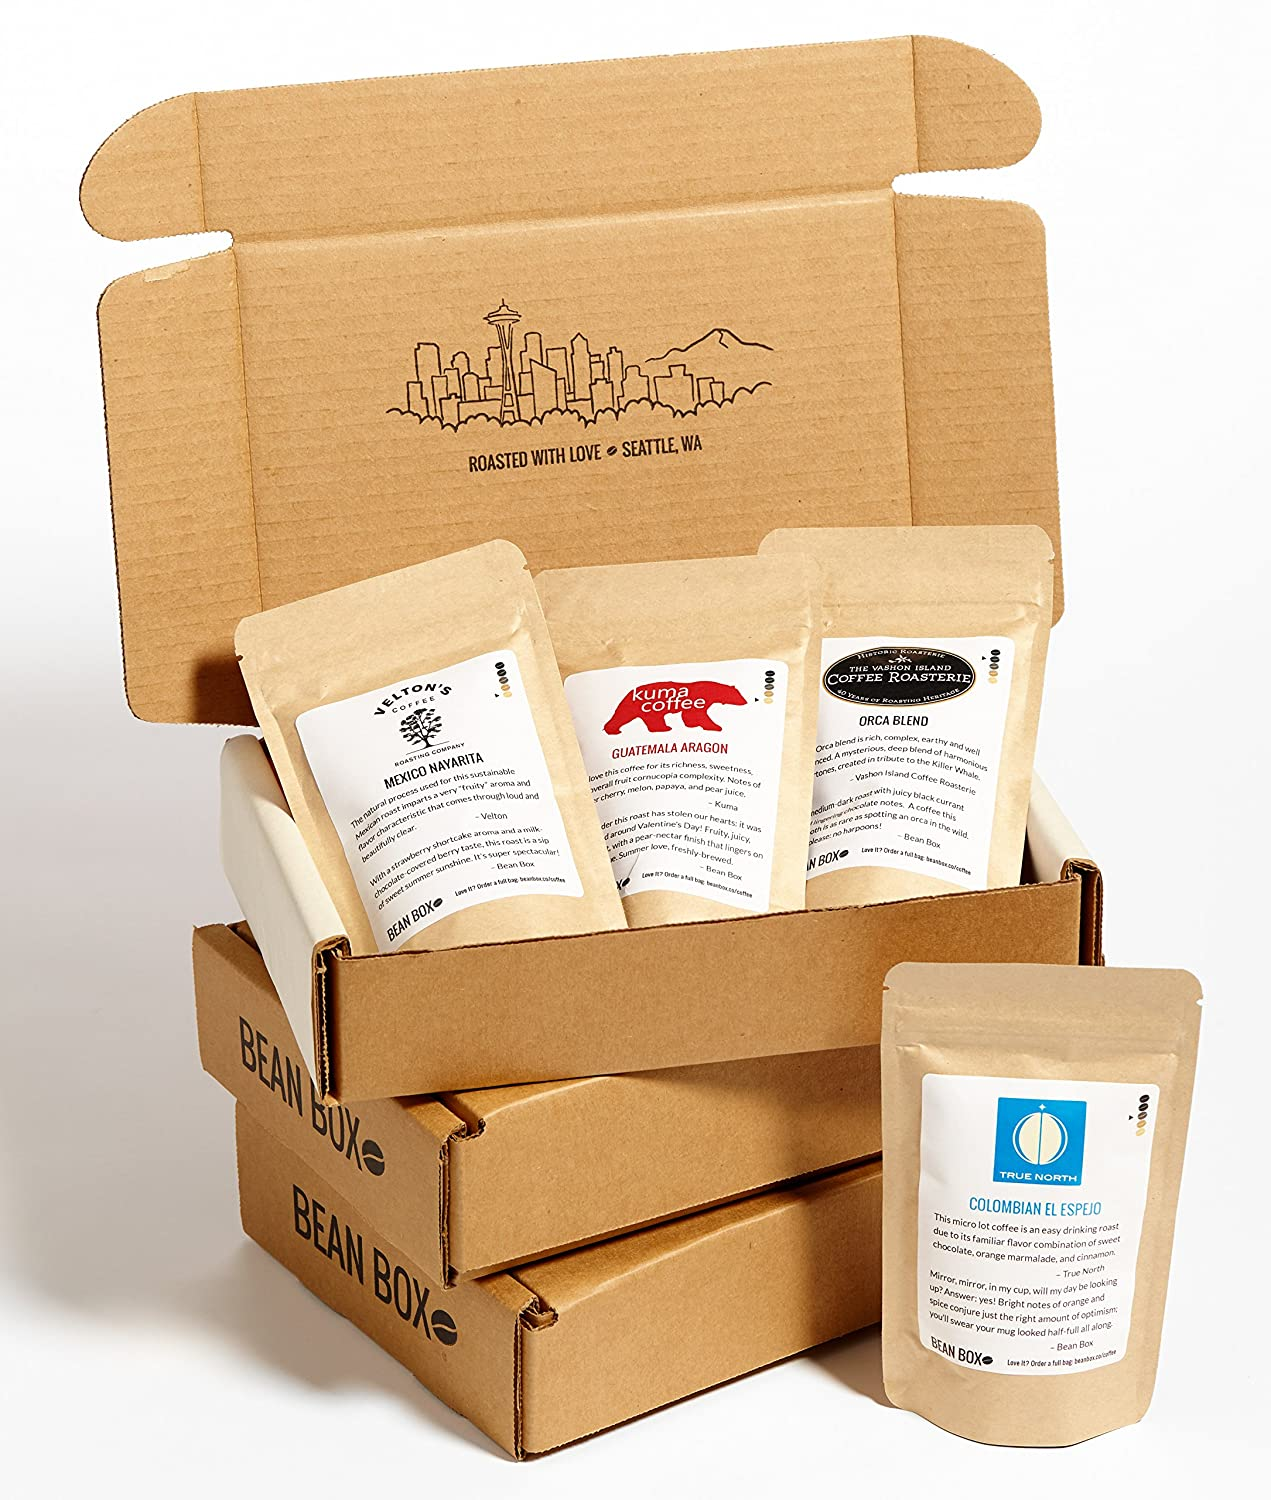 B01GOZYOCO Bean Box Gourmet Decaf Roast Coffee Sampler - 3-Month Gift Subscription - (whole bean, 4 roasts every month) 91CHZSoLglL